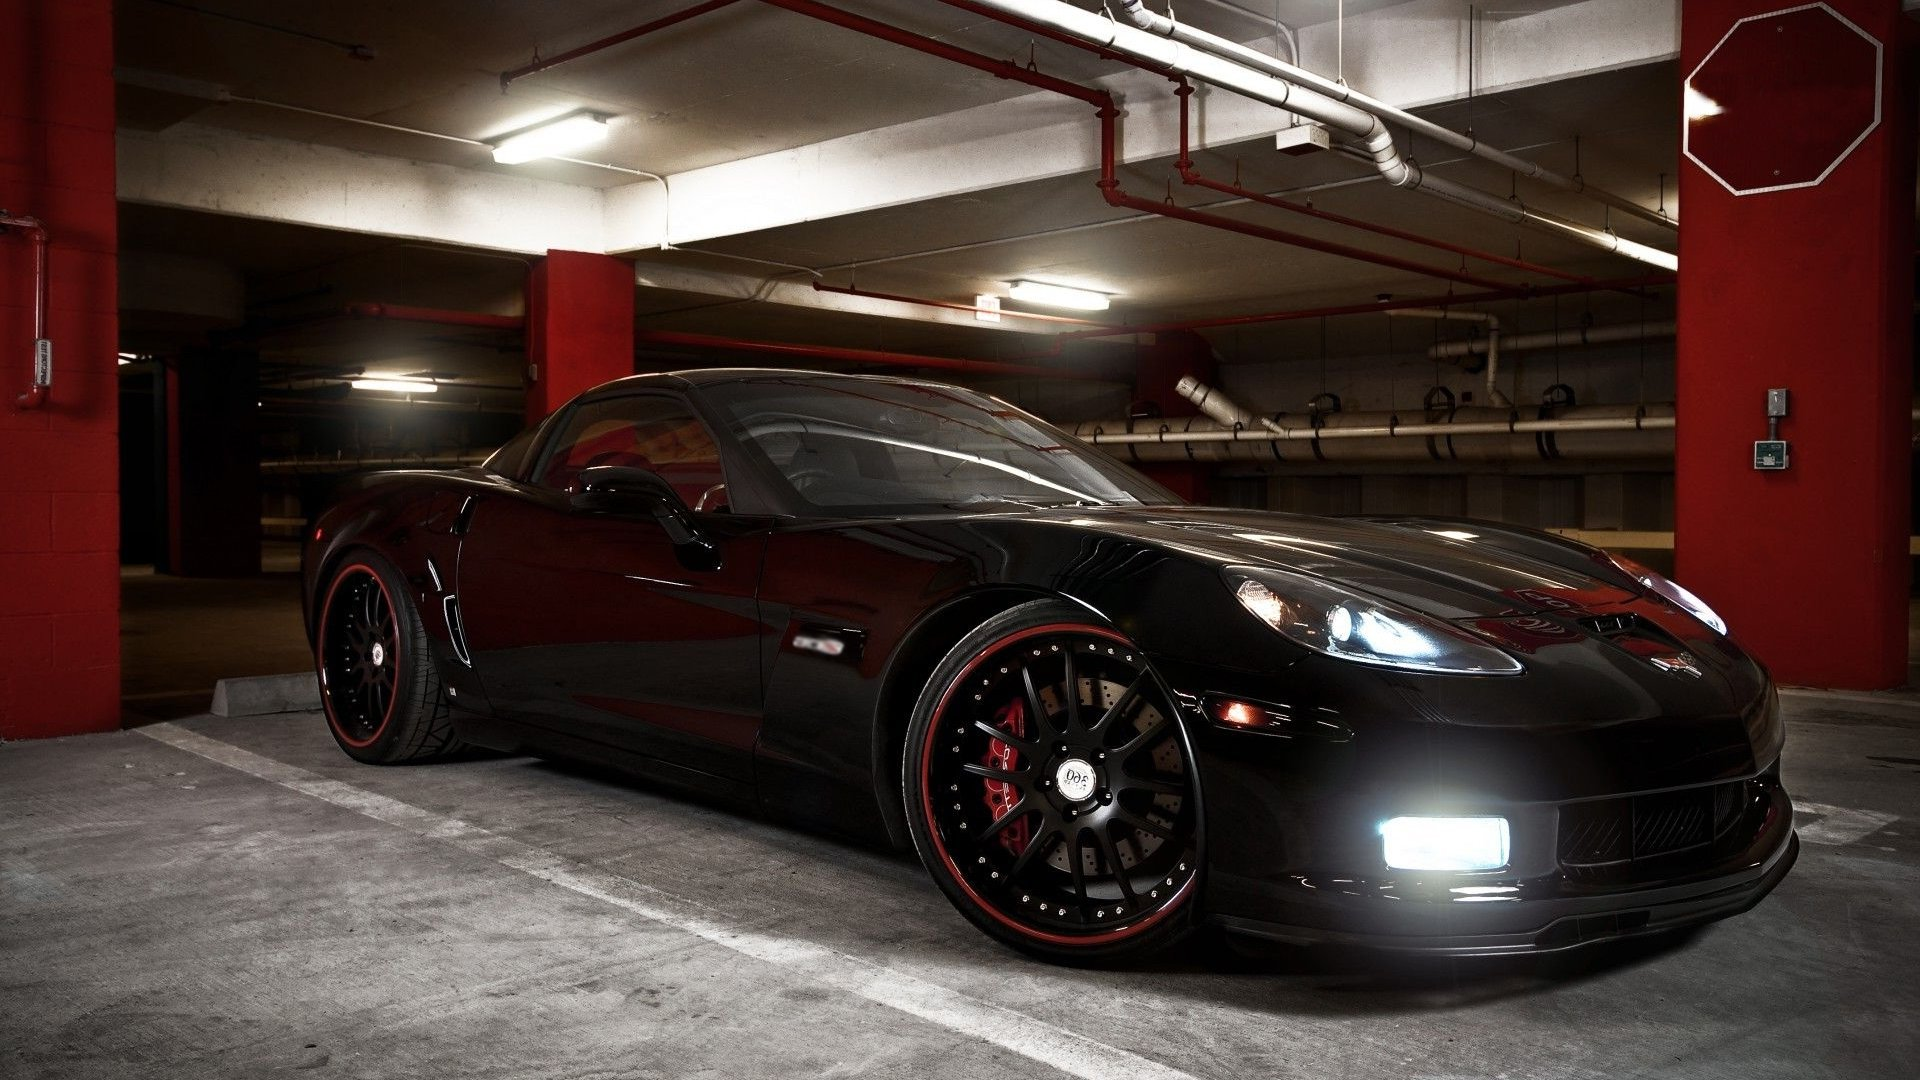 Lights Wallpaper Chevrolet Corvette HD